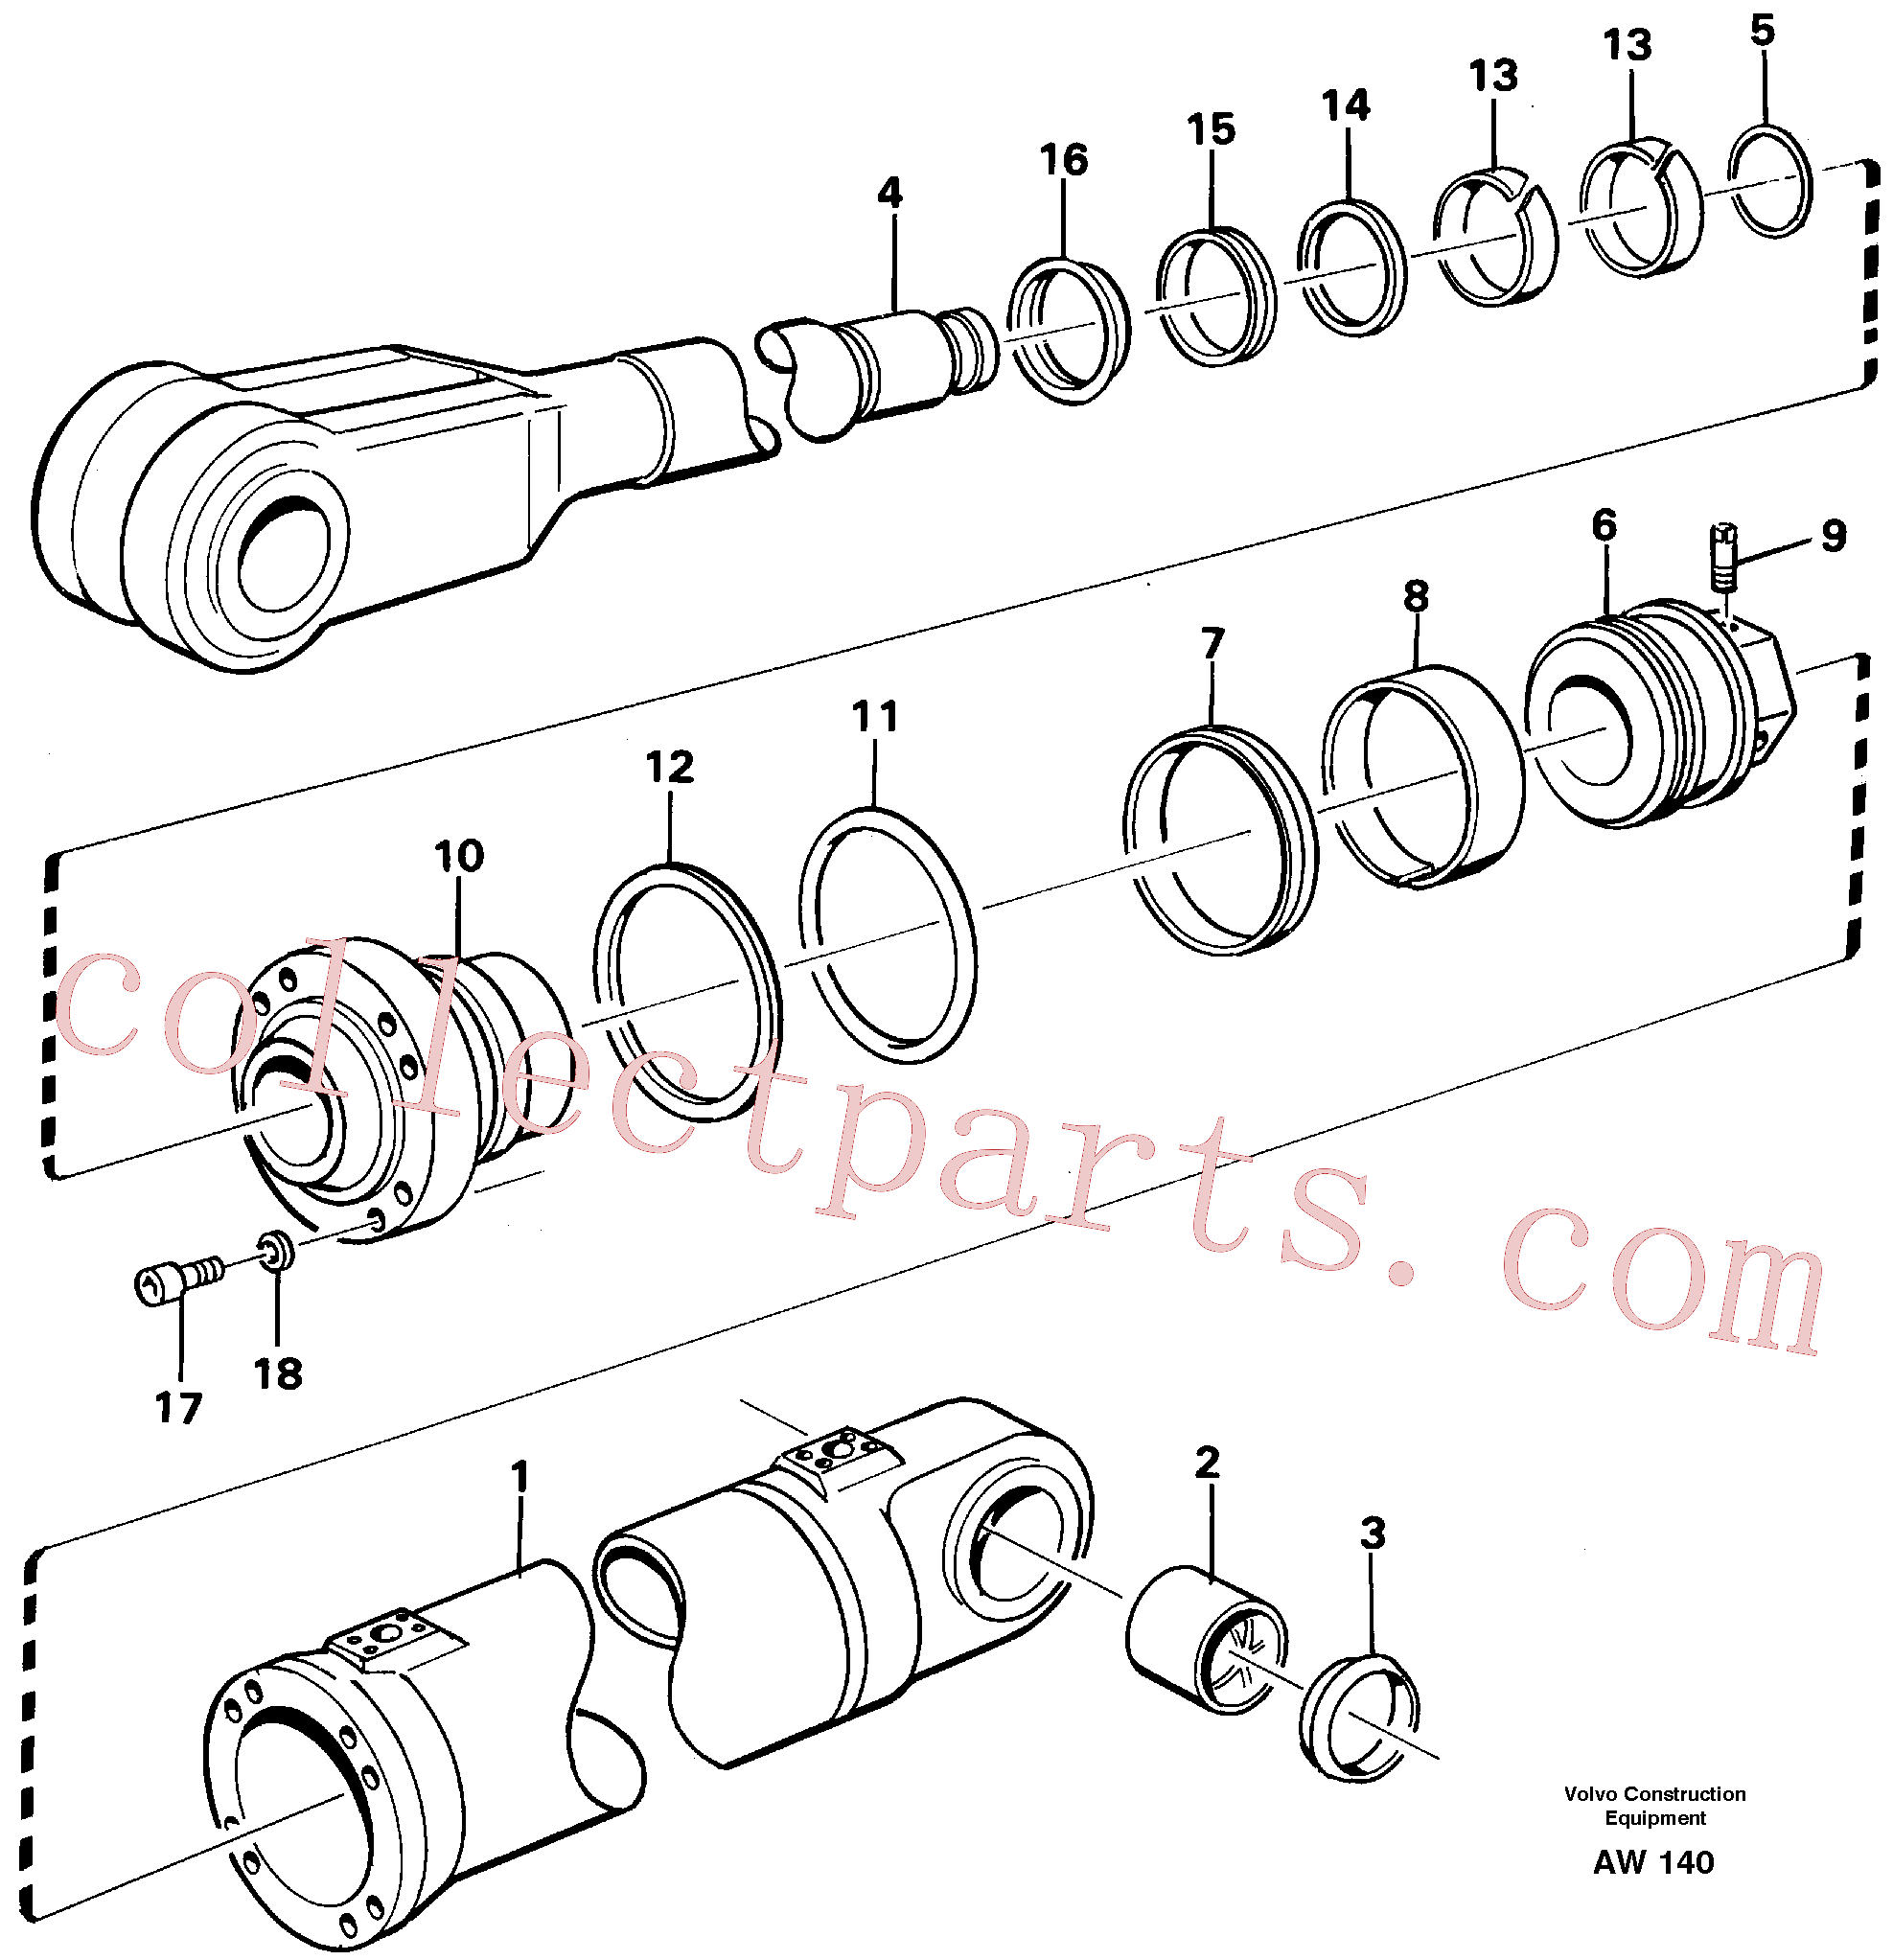 VOE11005107 for Volvo Hydraulic cylinder, lifting.(AW140 assembly)